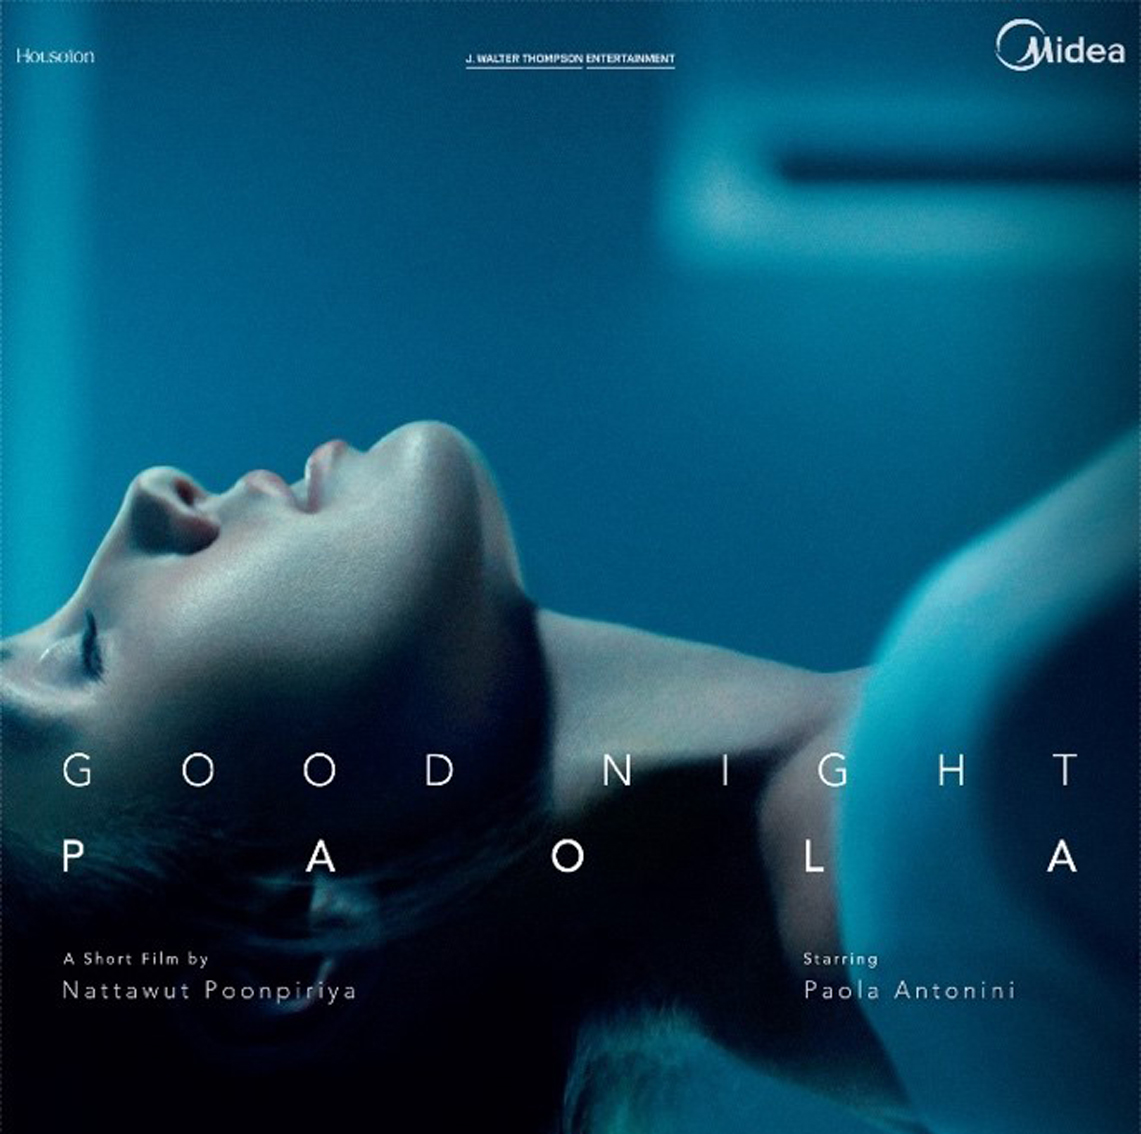 JWT Bangkok launches 'Good Night Paola' the first global film for Midea Air-Conditioners